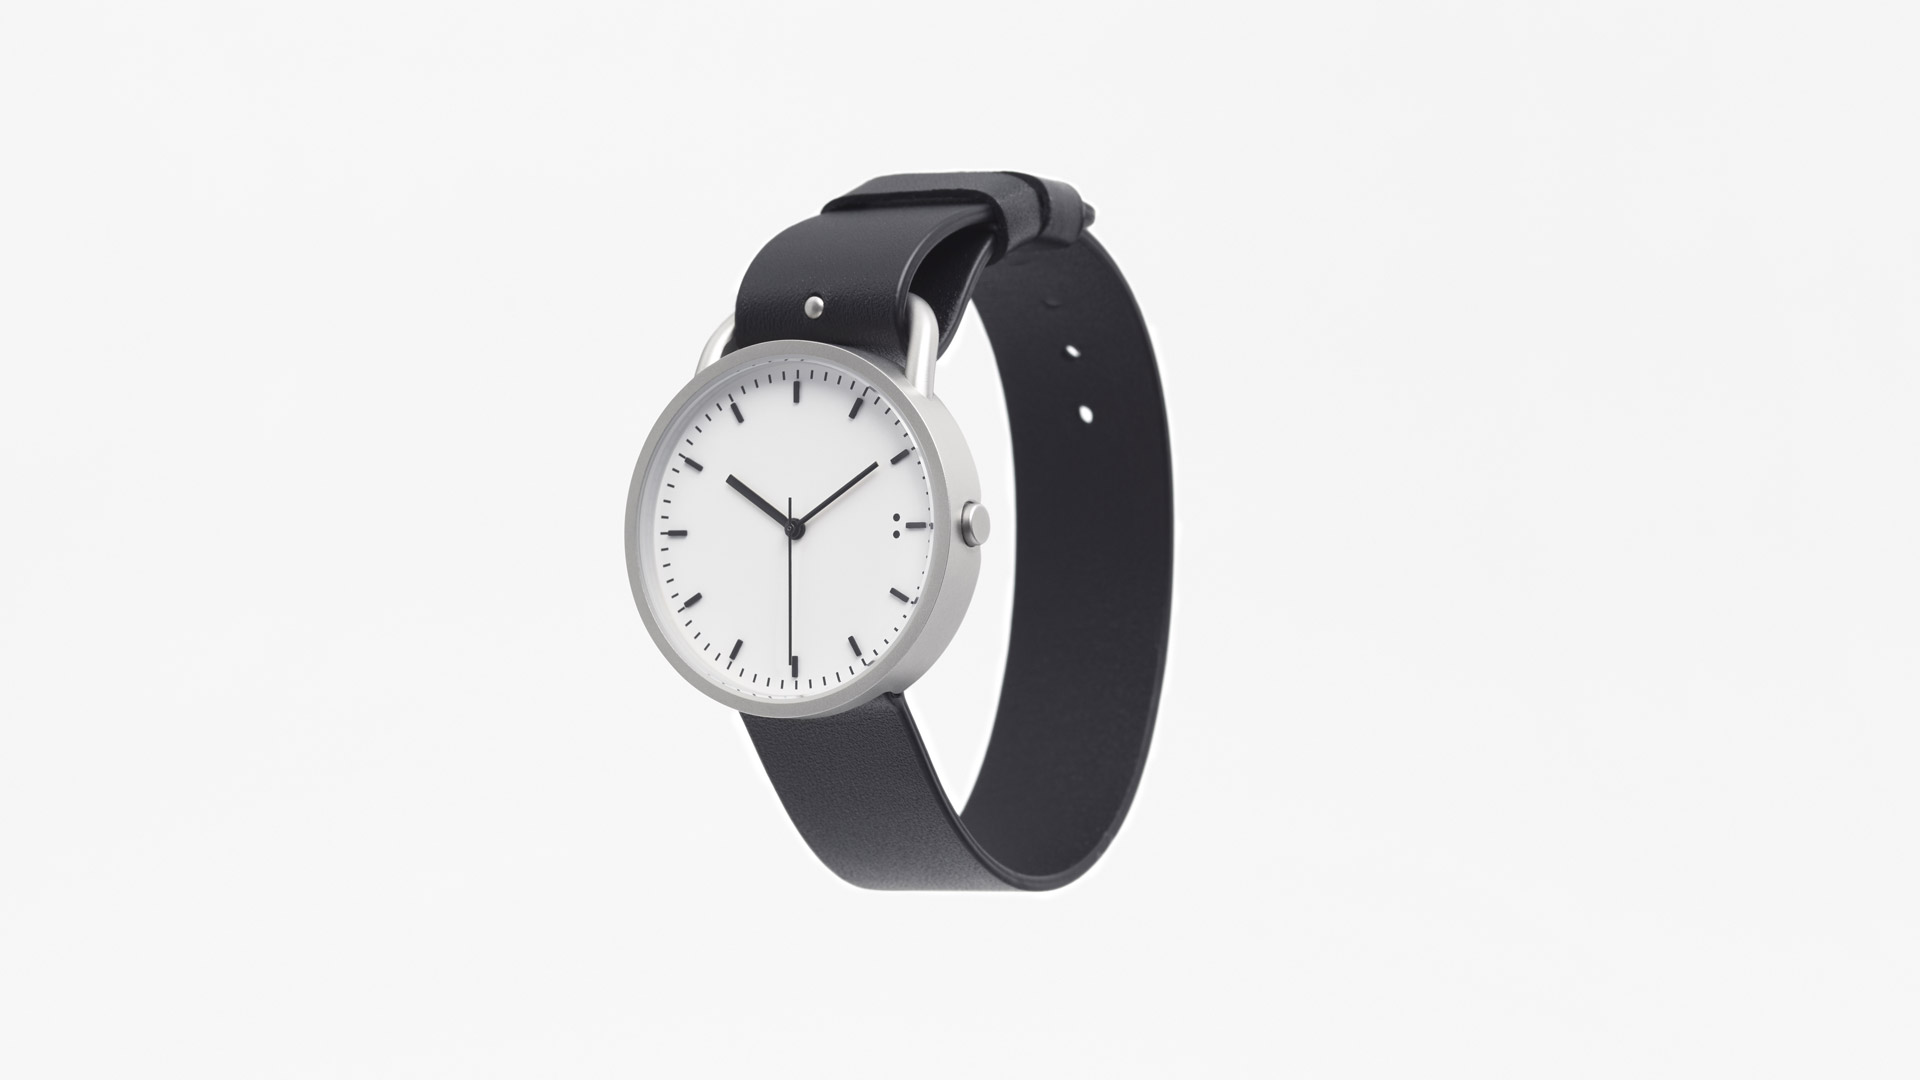 Japanese minimalism in this new watch by Nendo